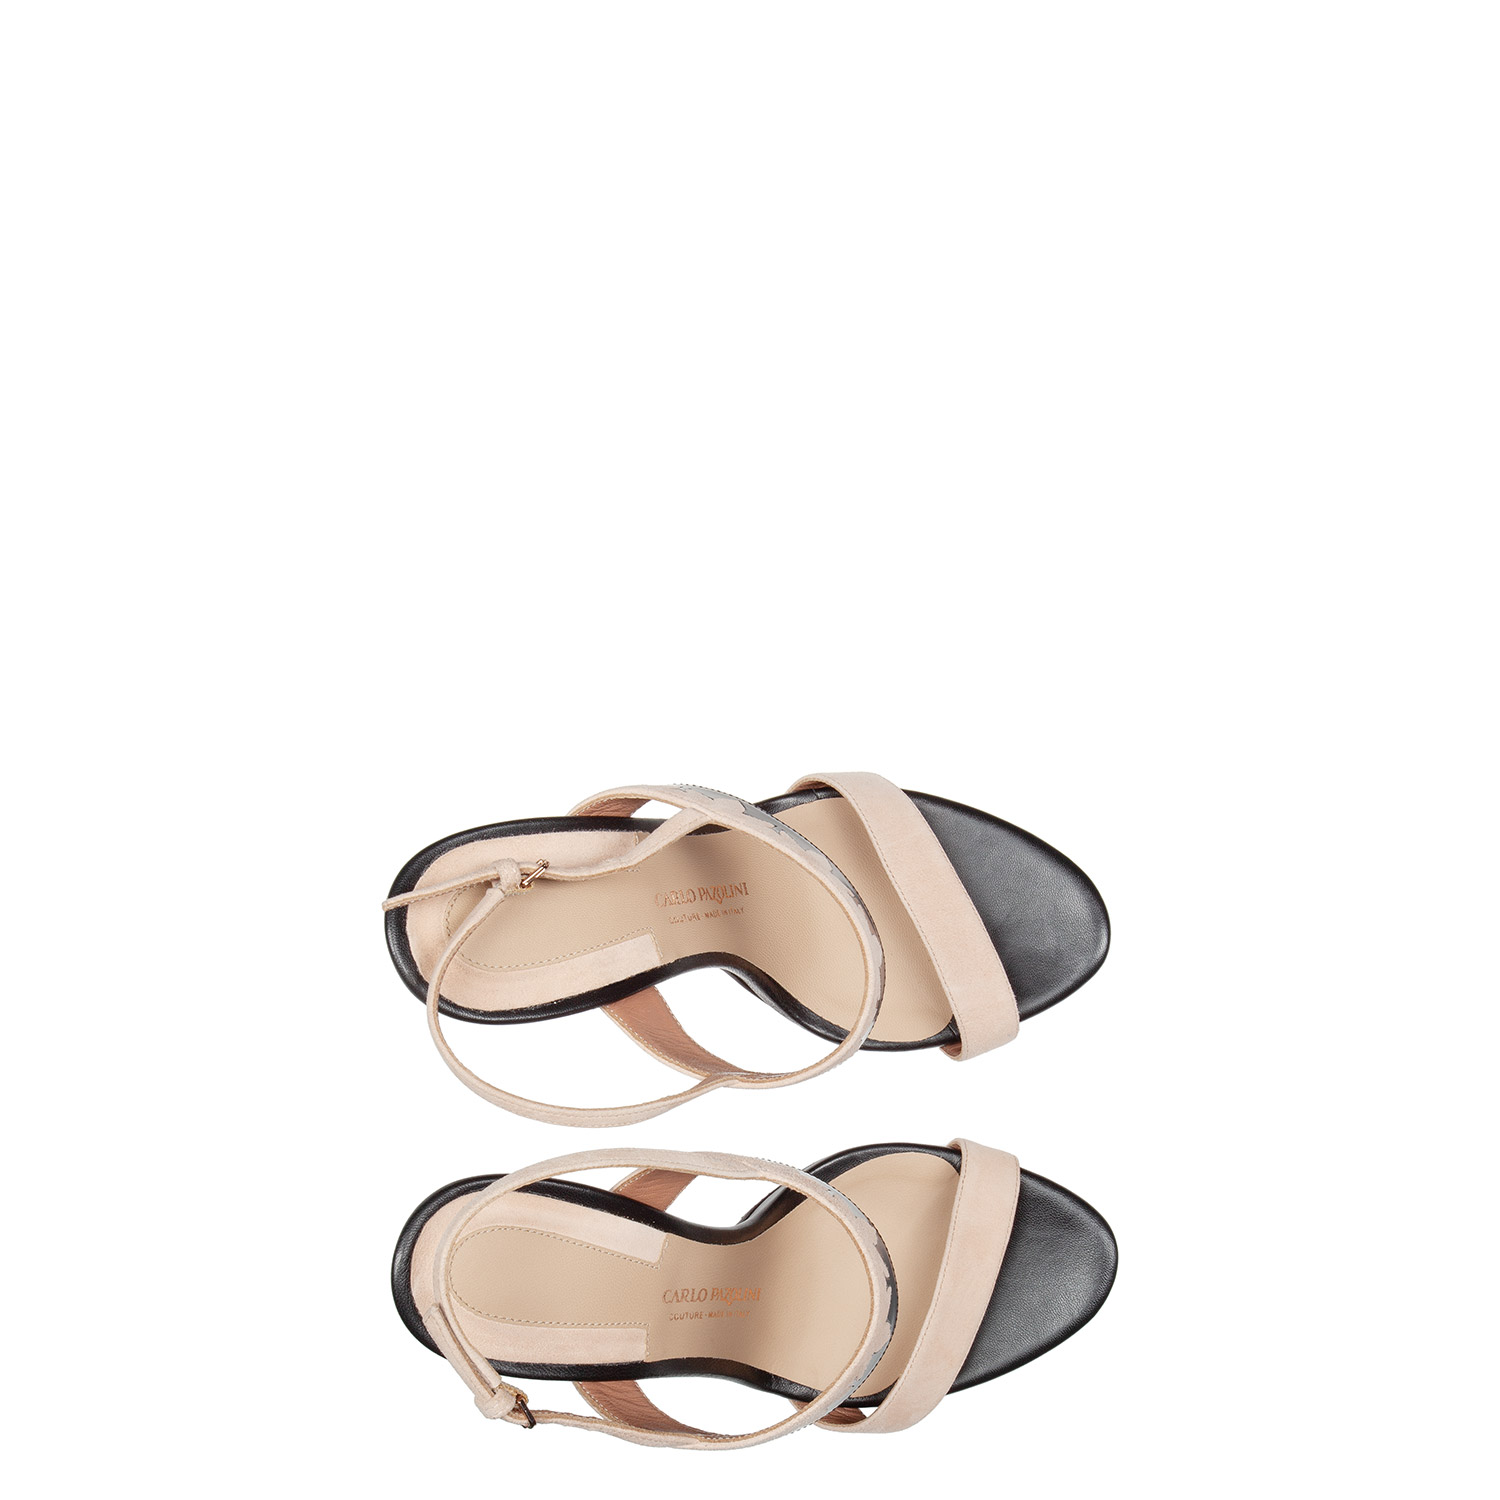 Women's sandals PAZOLINI LF-LIM1-20